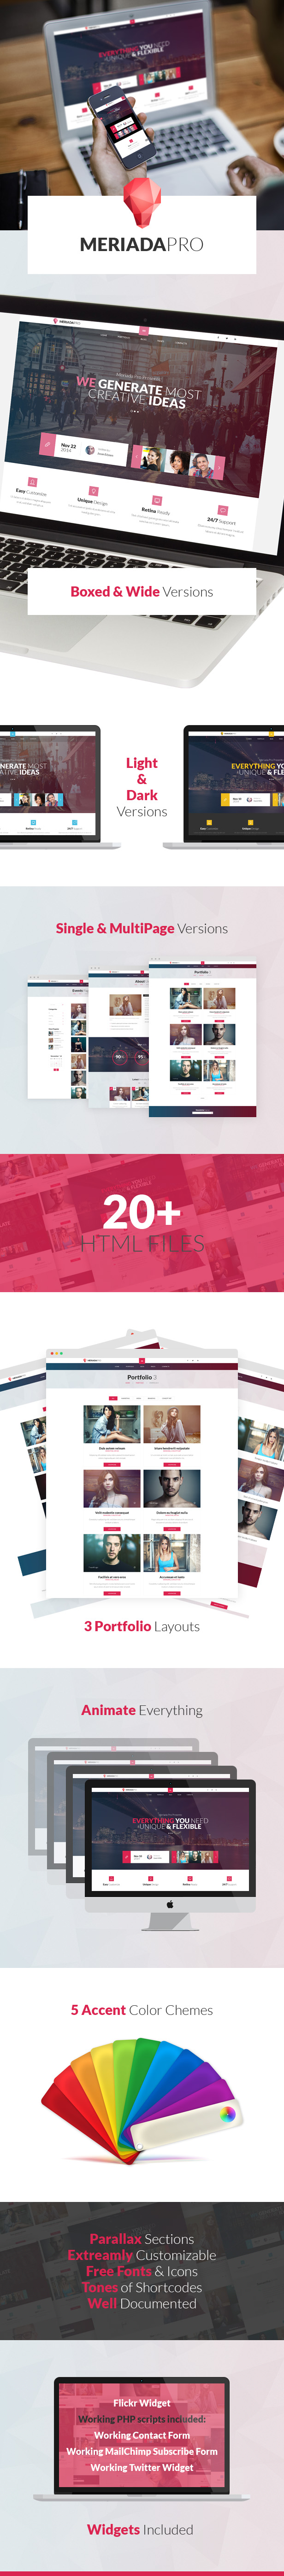 Meriada Pro - Responsive Corporate HTML Template